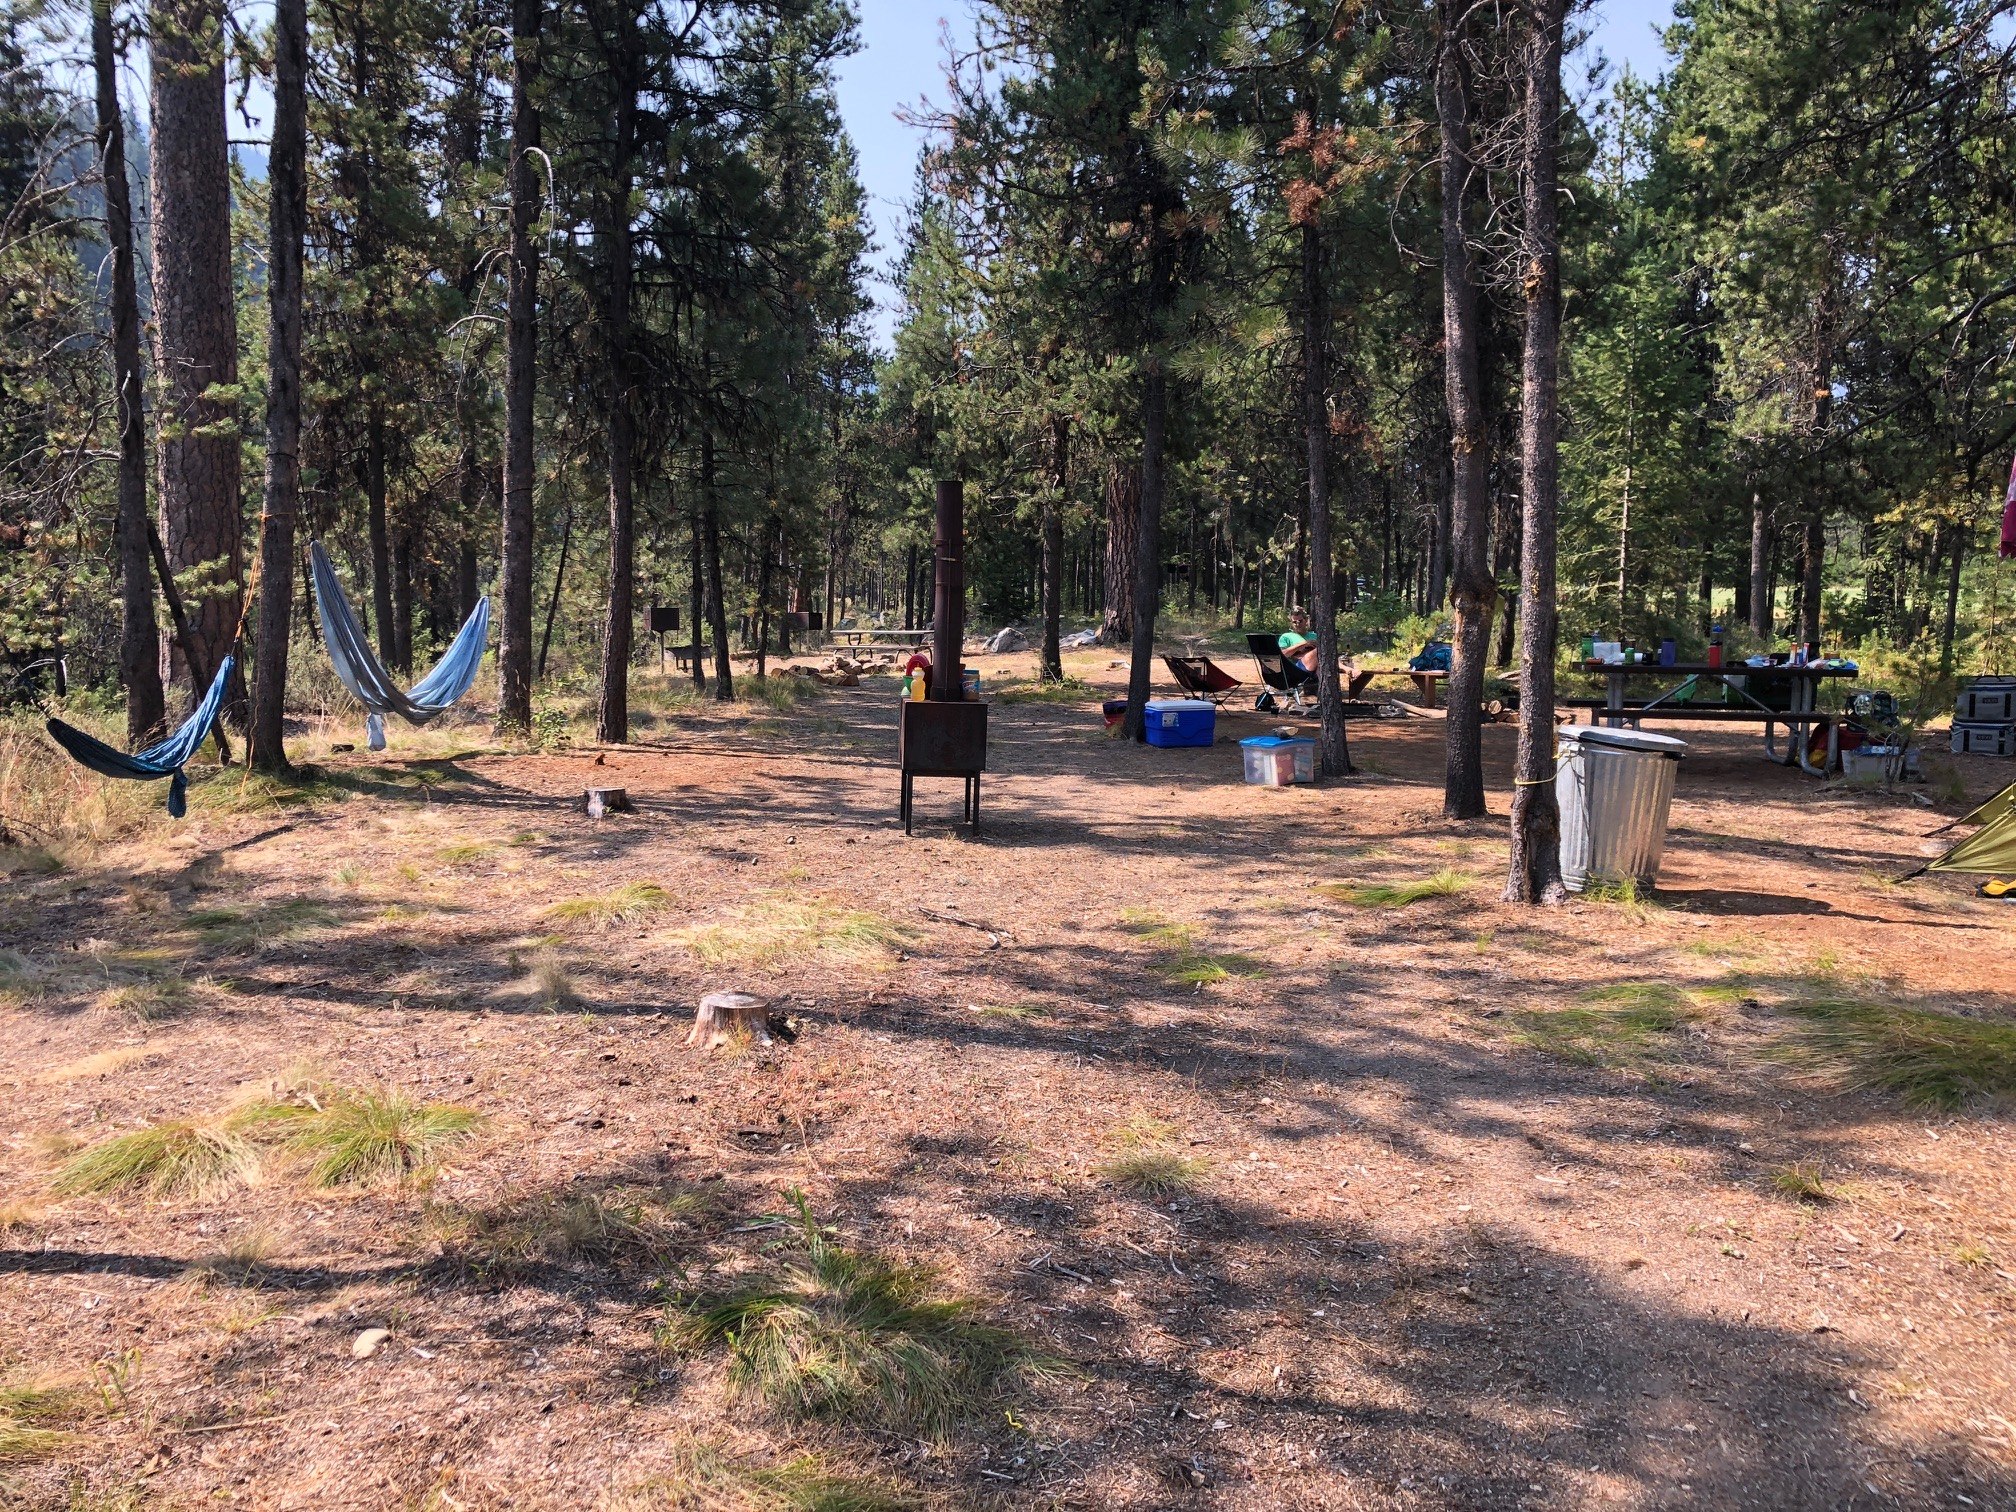 Our great campsite